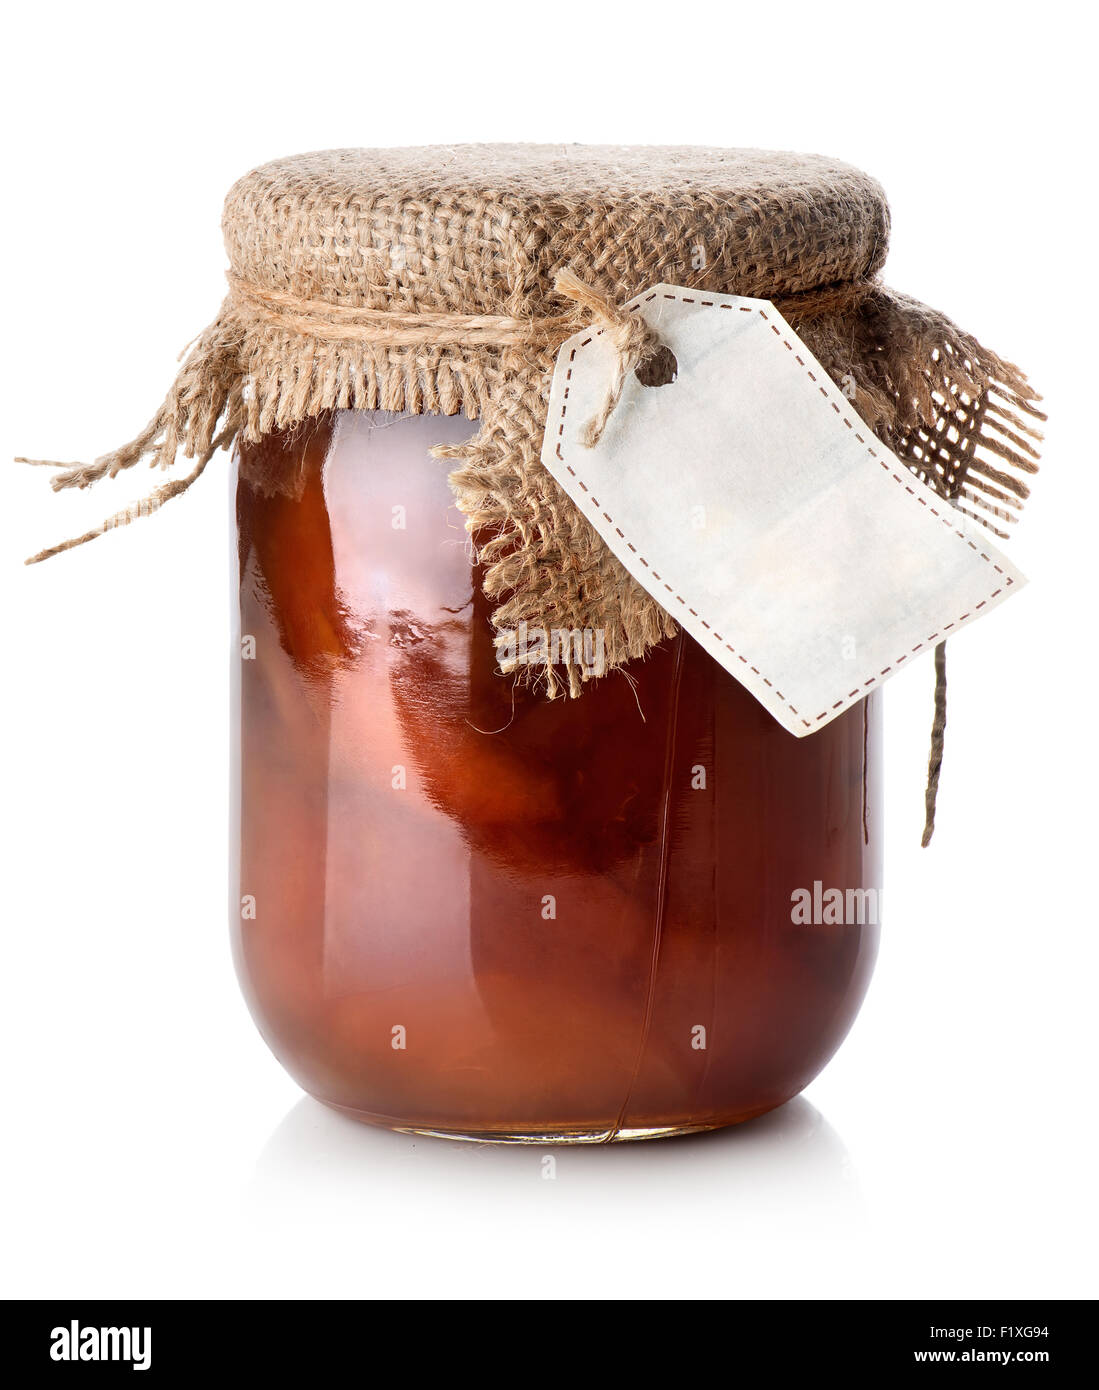 Jar of confiture isolated on a white background - Stock Image